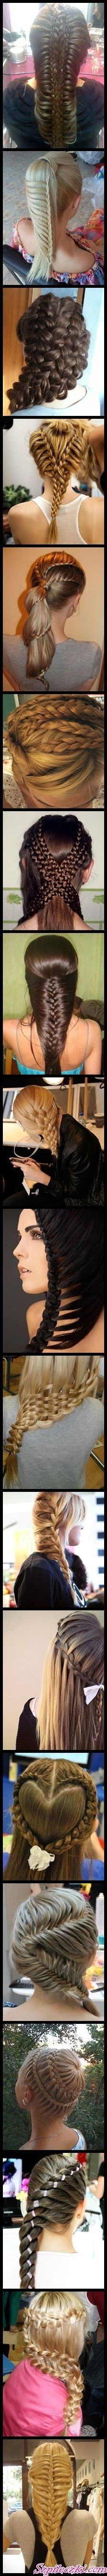 The french braid trend has gone a little crazy.  Seriously, how long does it take to do one of these?